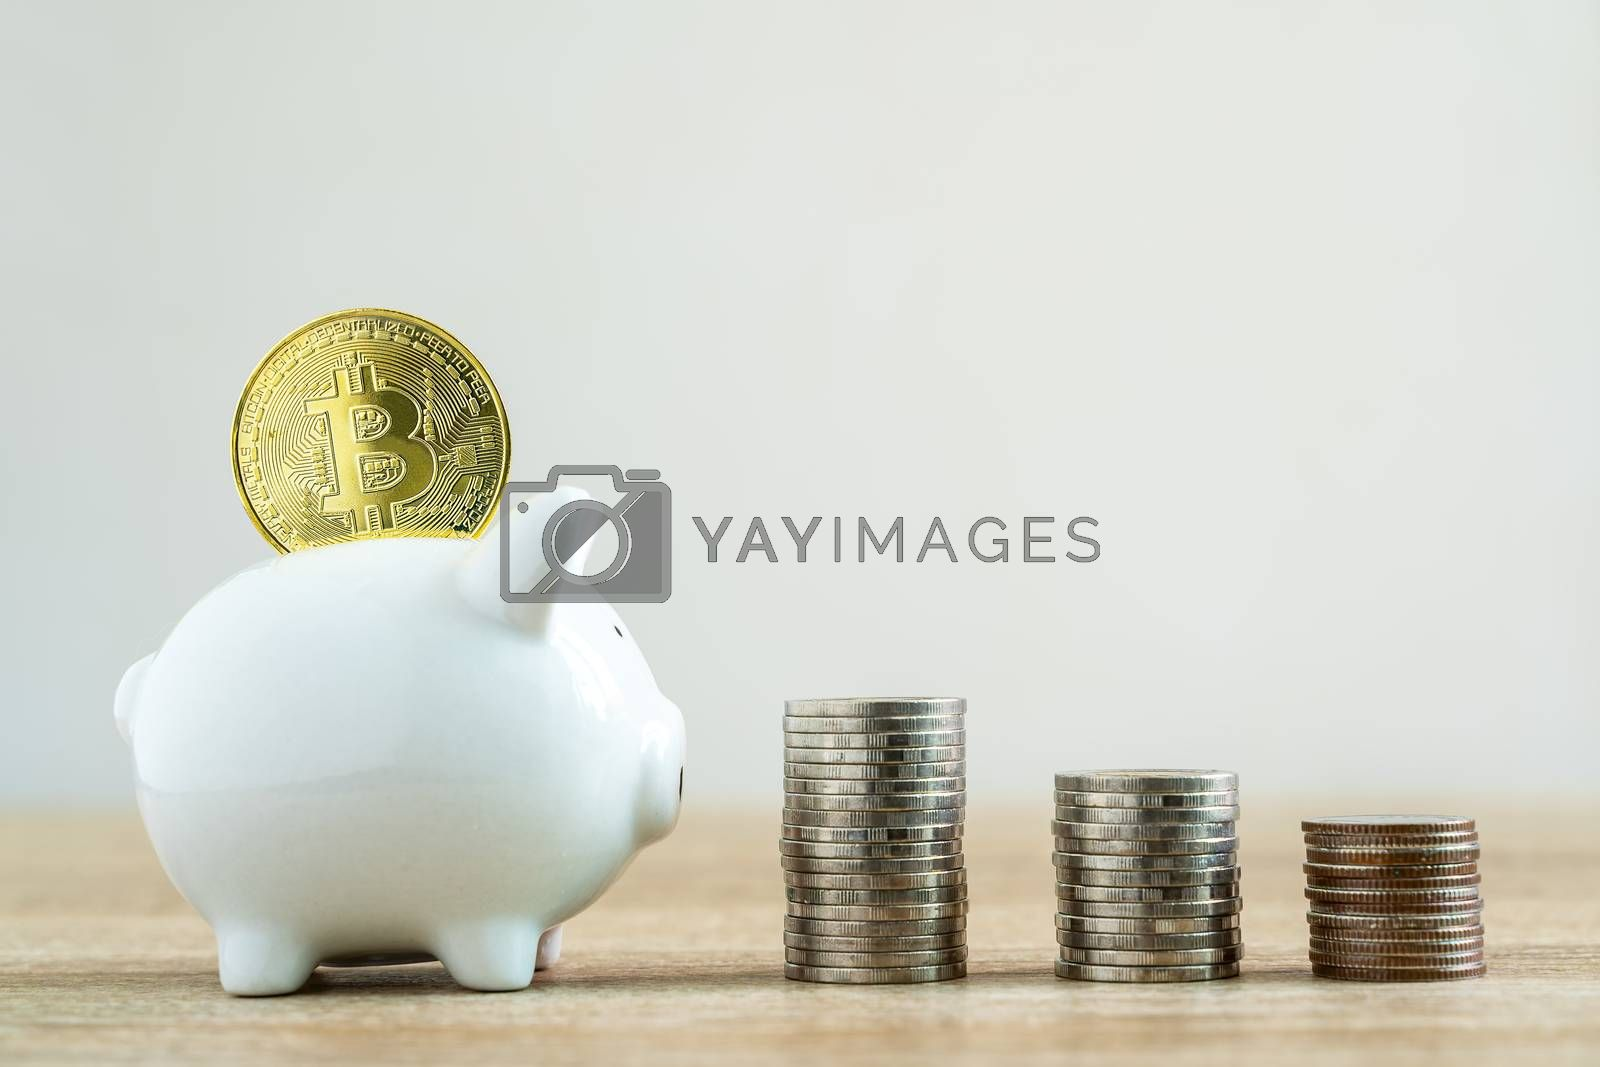 Money savings concepts stack coin with bitcoin to put in piggy bank to spend on expenses such as savings, tourism, investment, emergency, retirement on wooden table with blur background and copy space